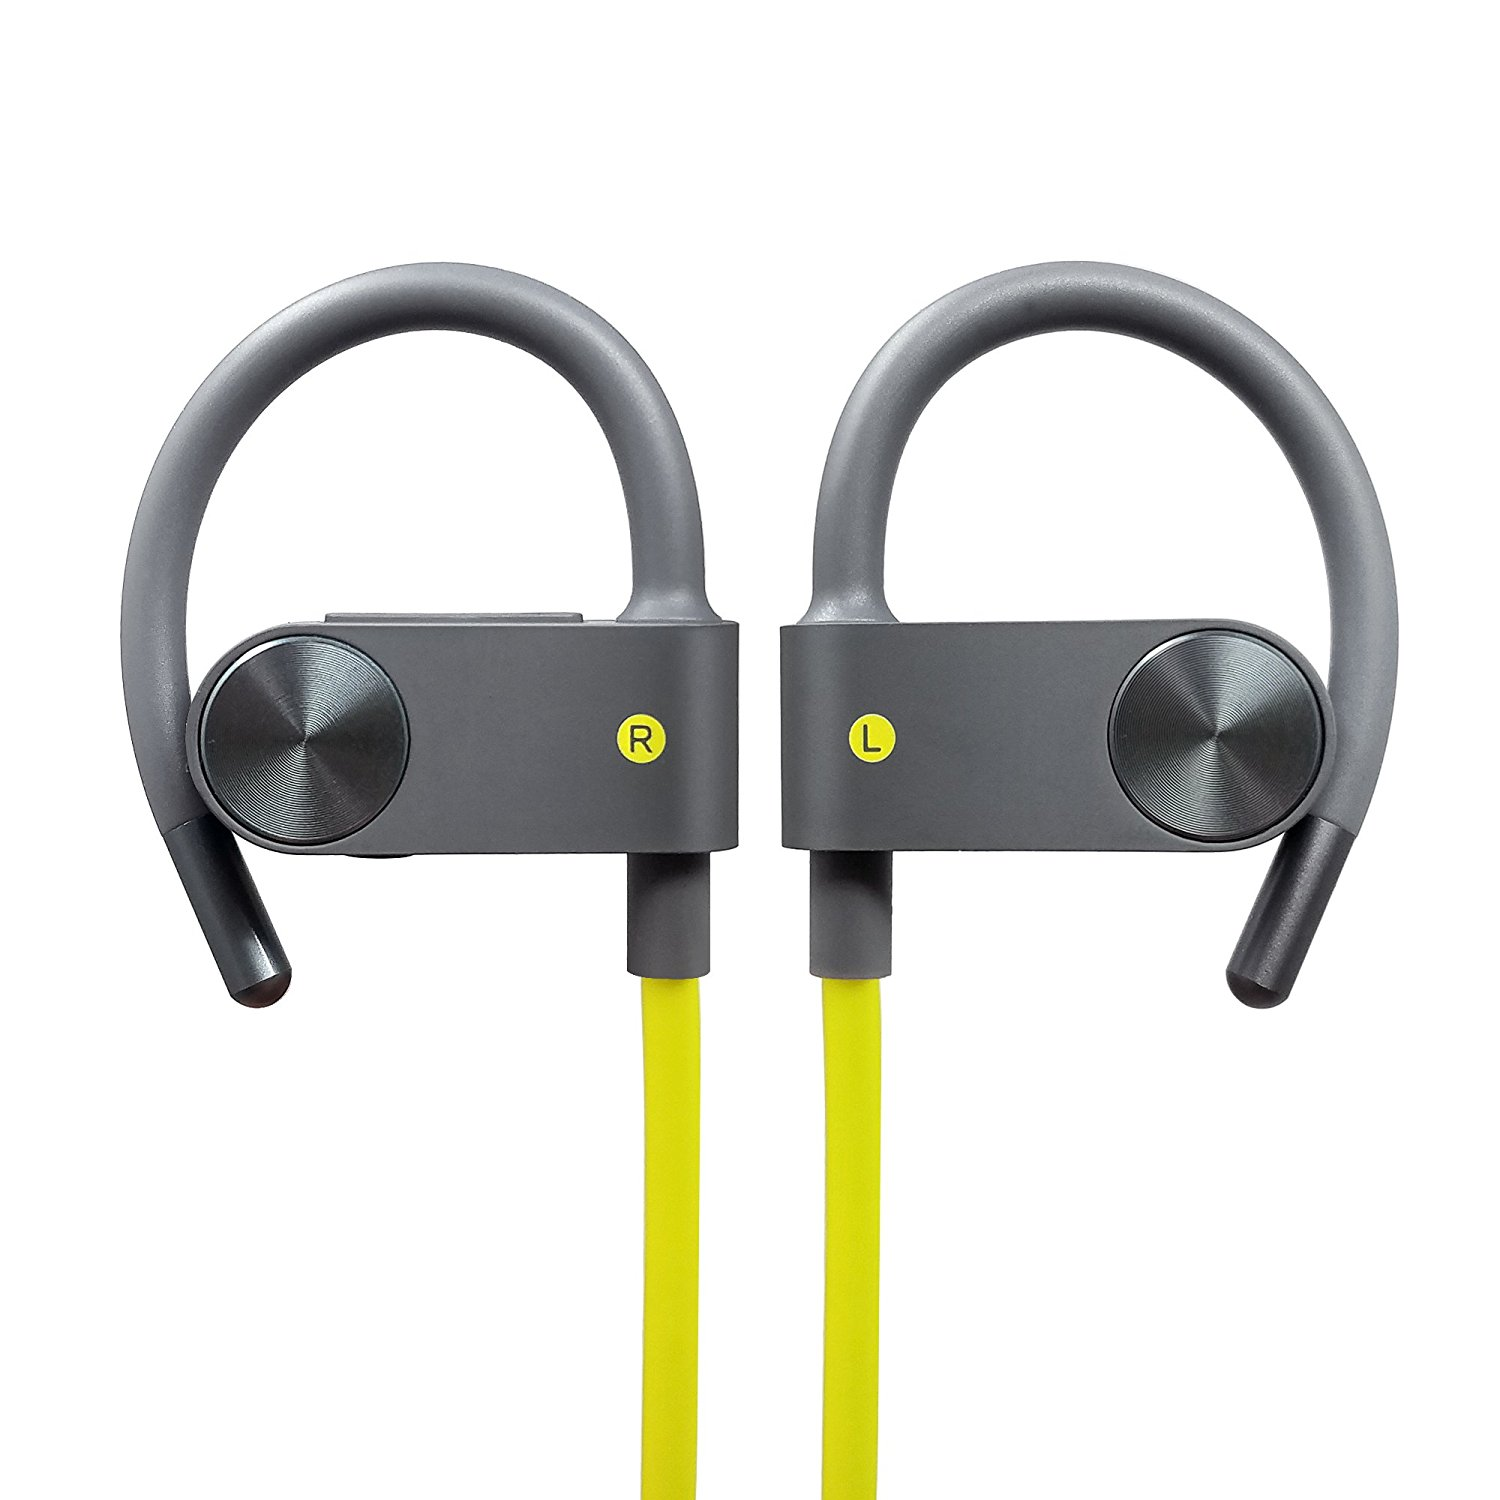 Photive Bt55g Sport Bluetooth Headphones Wireless Earbuds For Running Gym Workout In Ear Sweatproof Secure Fit Earphones With Built In Mic And Remote In Headset Walmart Com Walmart Com